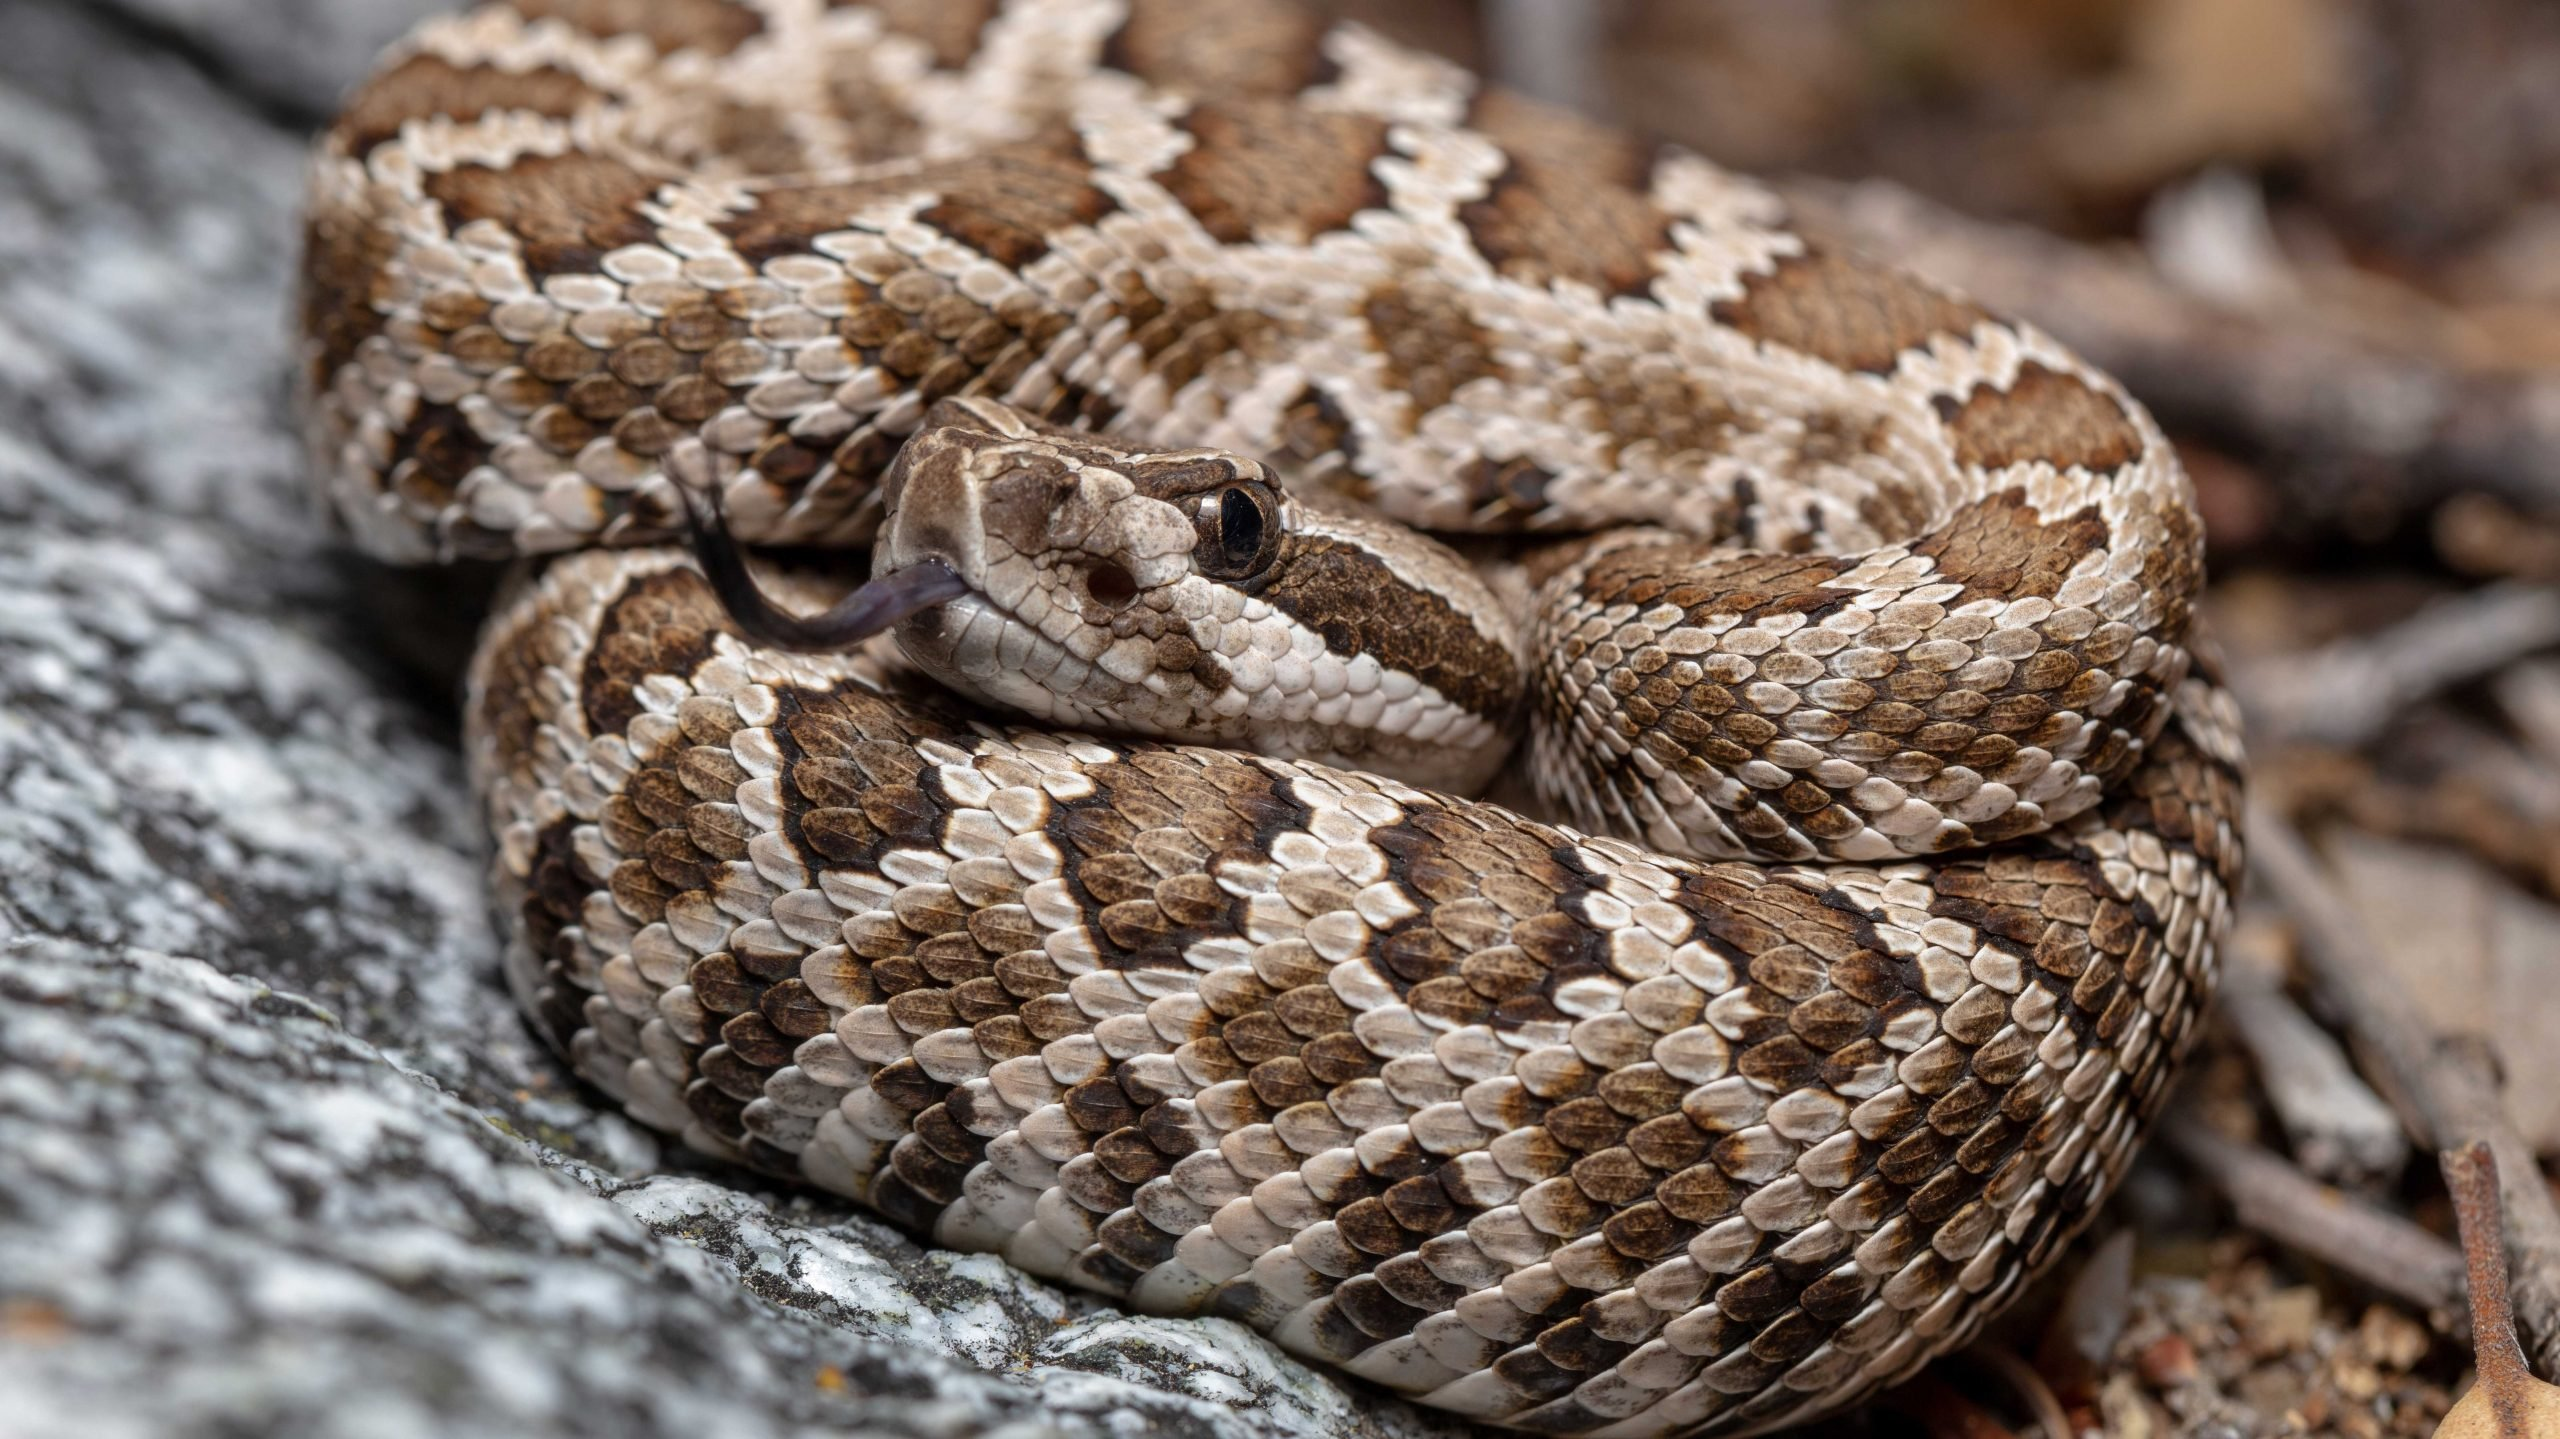 Neonate Southern Pacific Rattlesnake (Crotalus helleri)